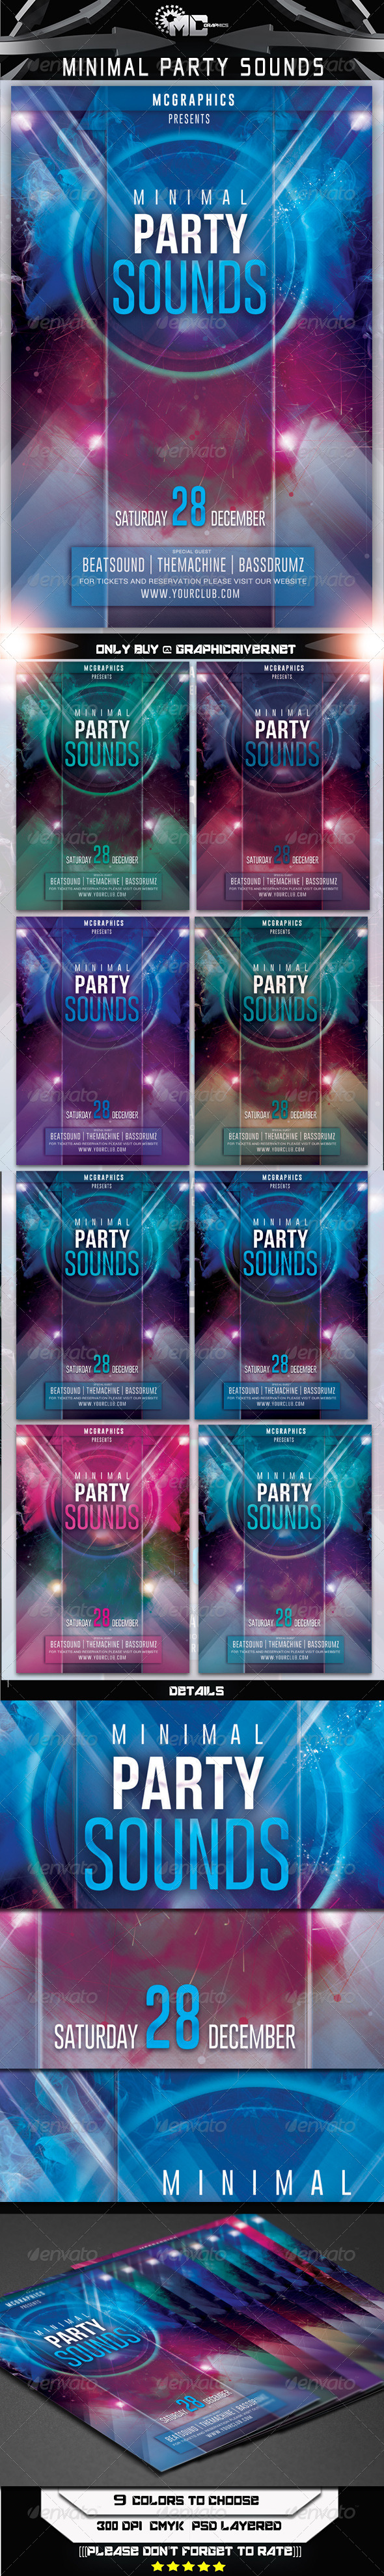 GraphicRiver Minimal Party Sounds Flyer Template 7846400